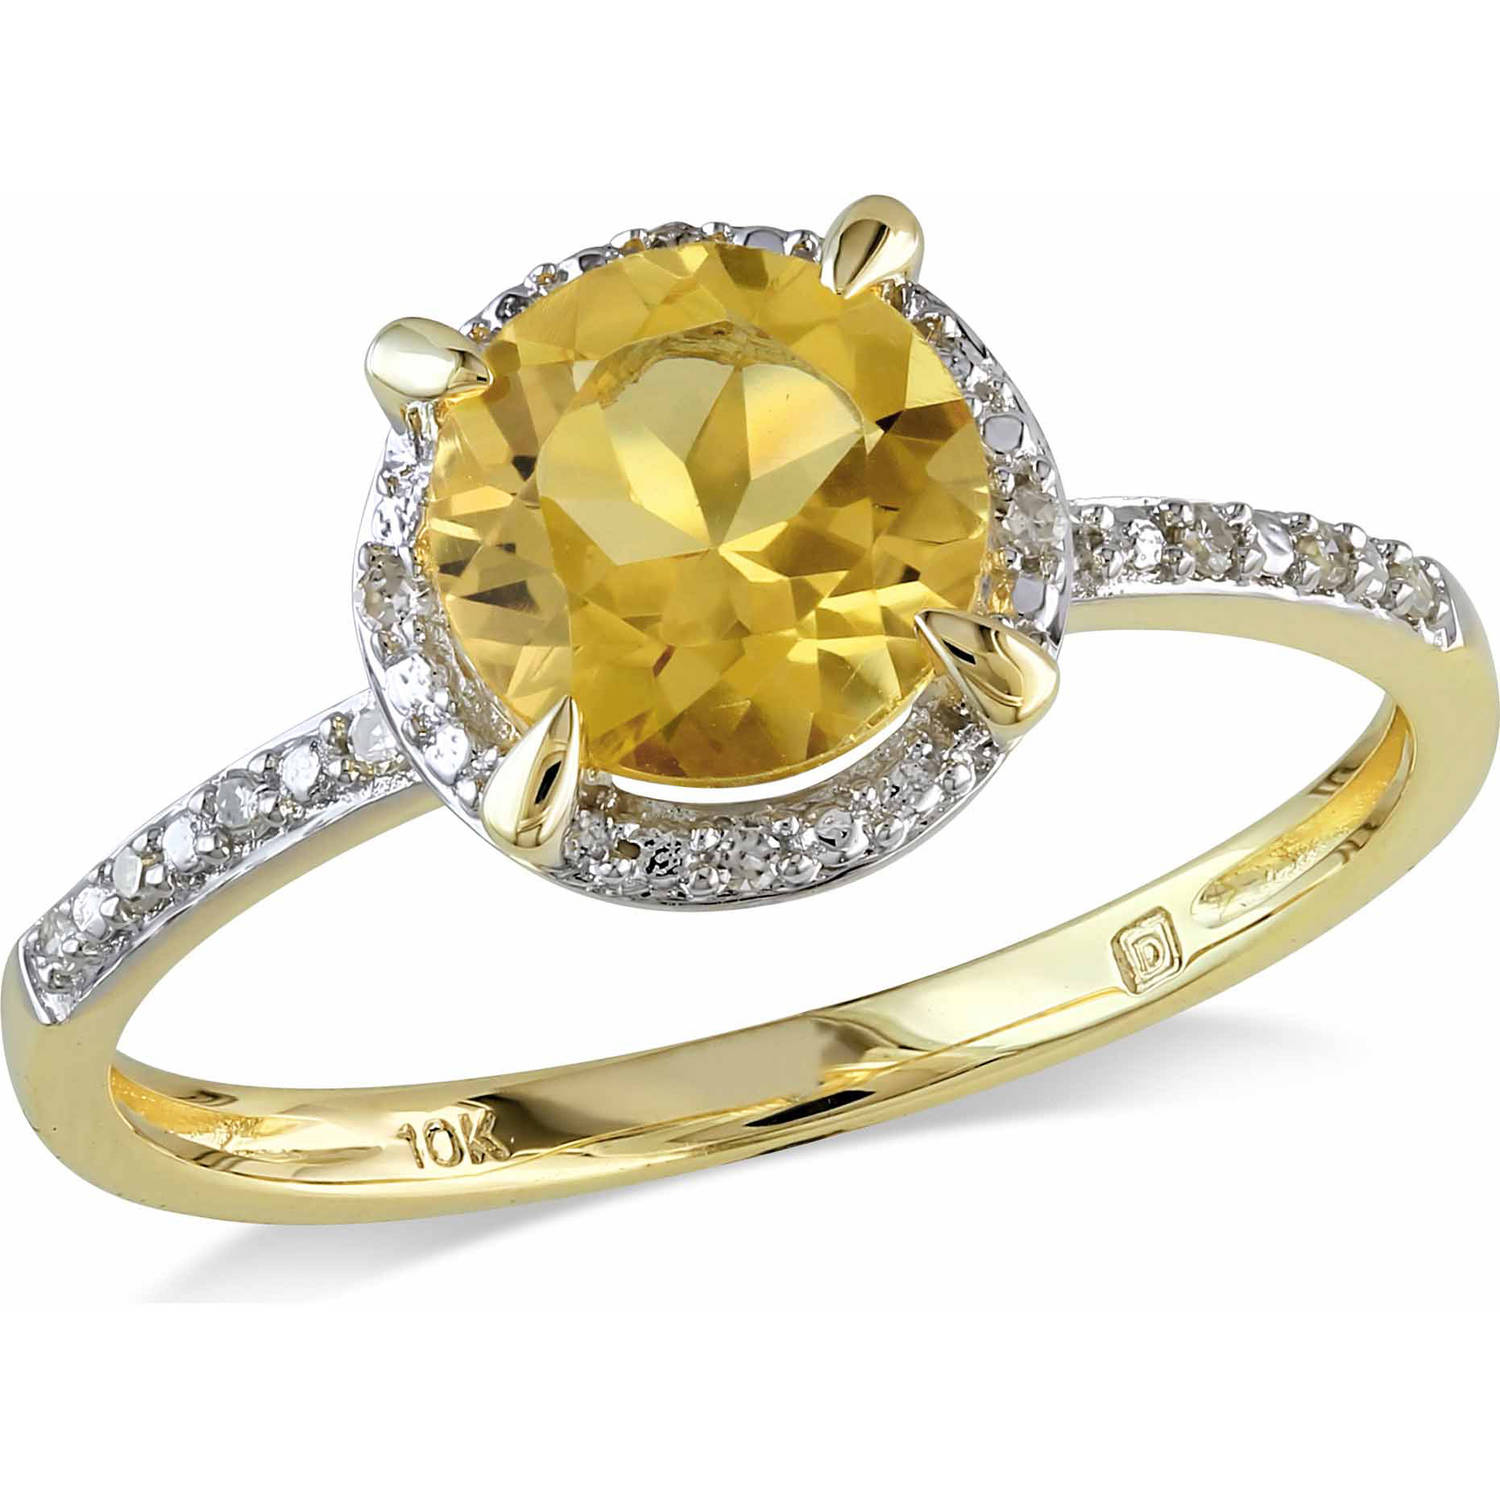 Tangelo 1-1/4 Carat T.G.W. Citrine and Diamond-Accent 10kt Yellow Gold Halo Ring